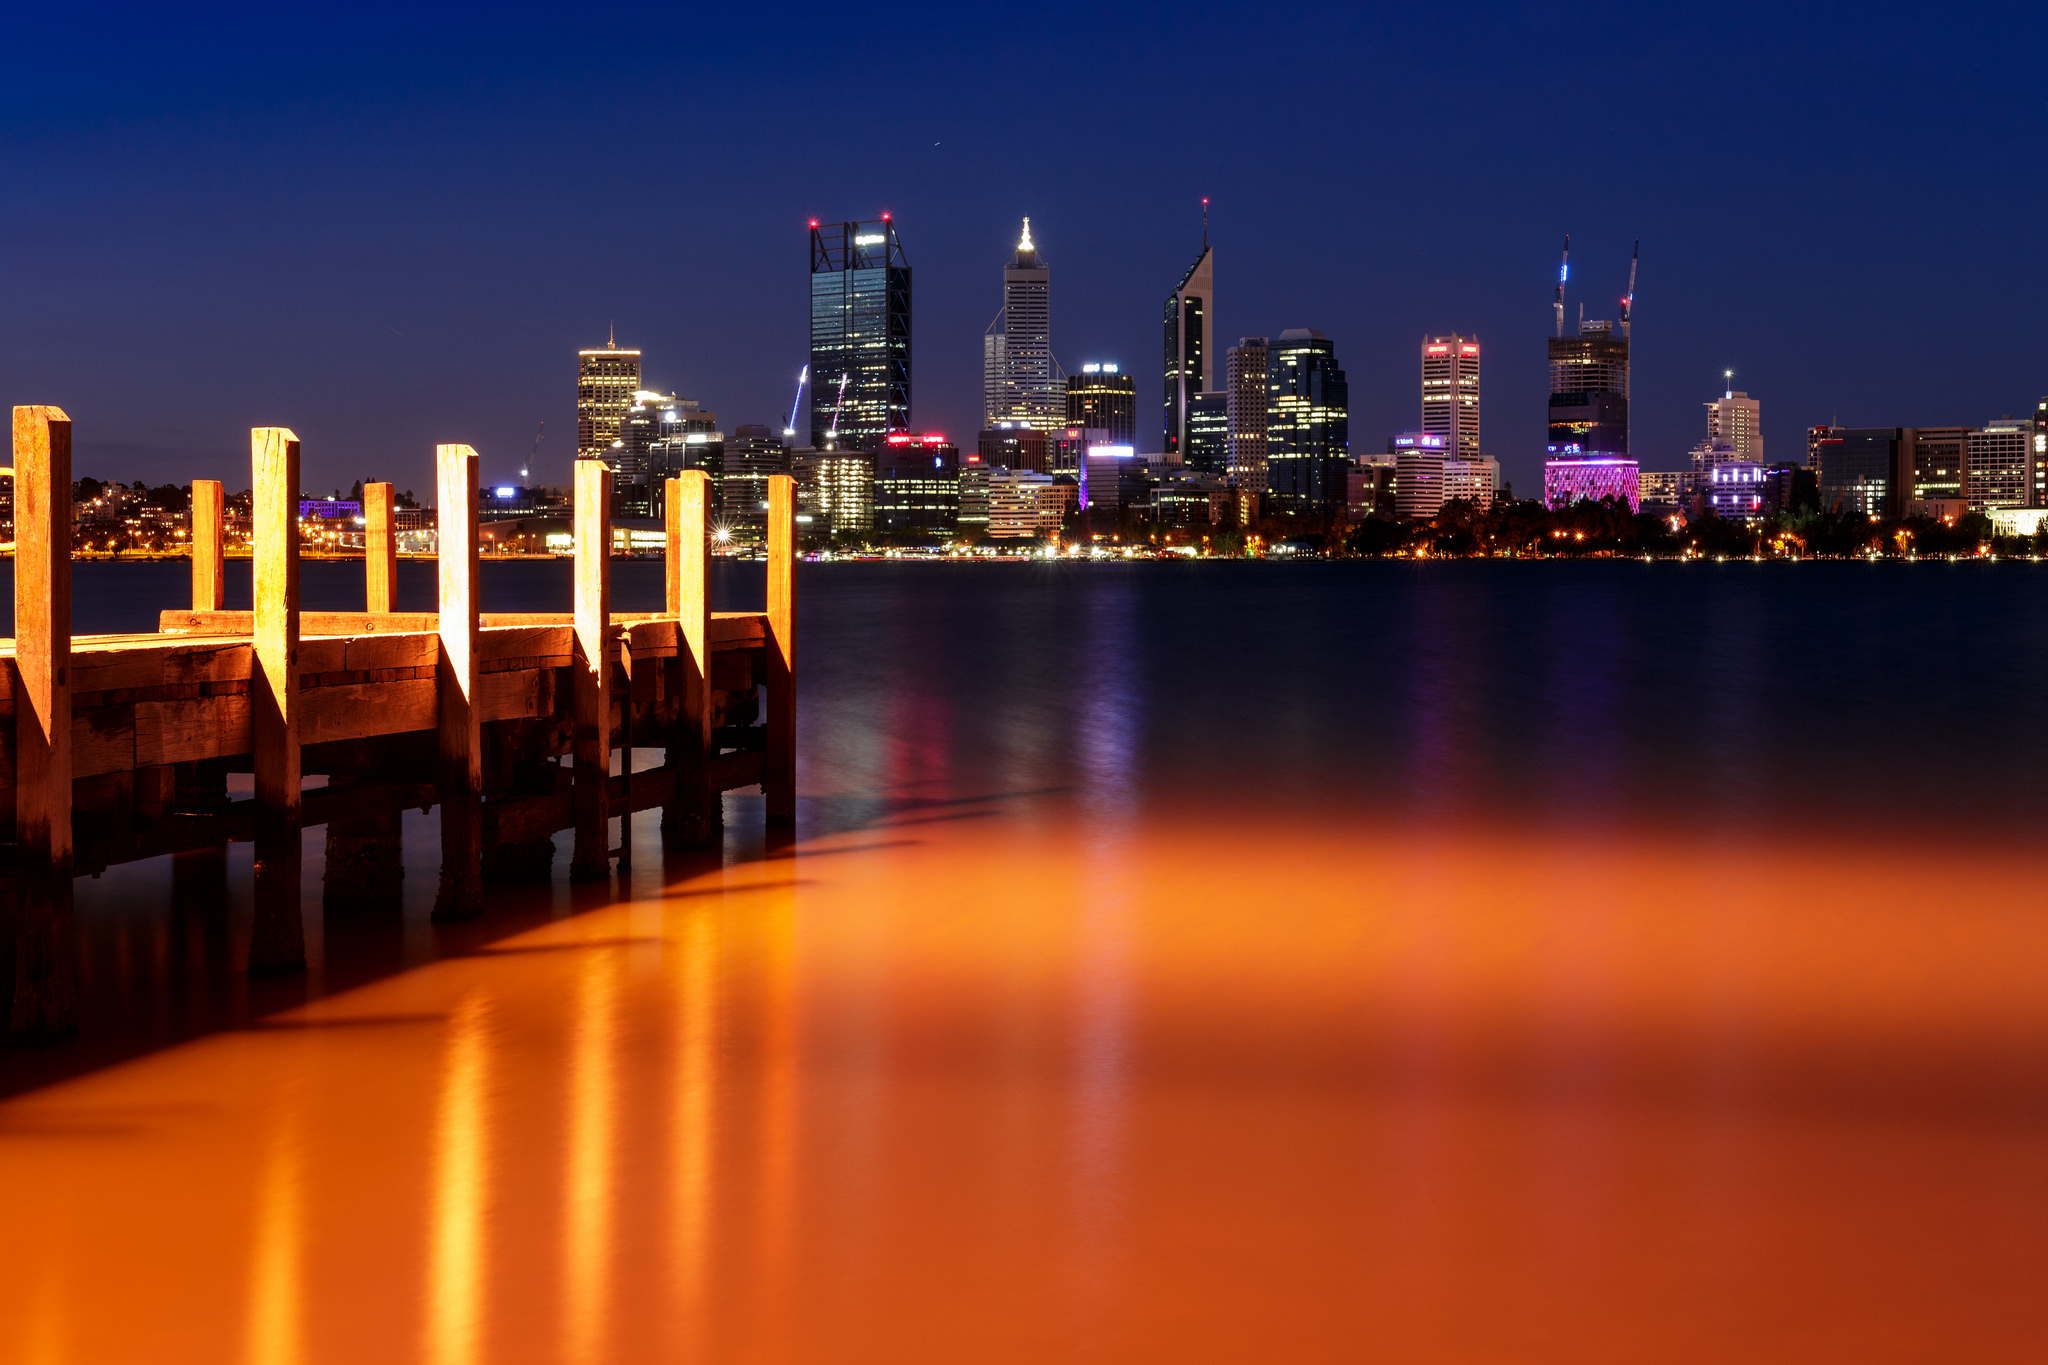 Perth City from the Coode Street Jetty, Australia